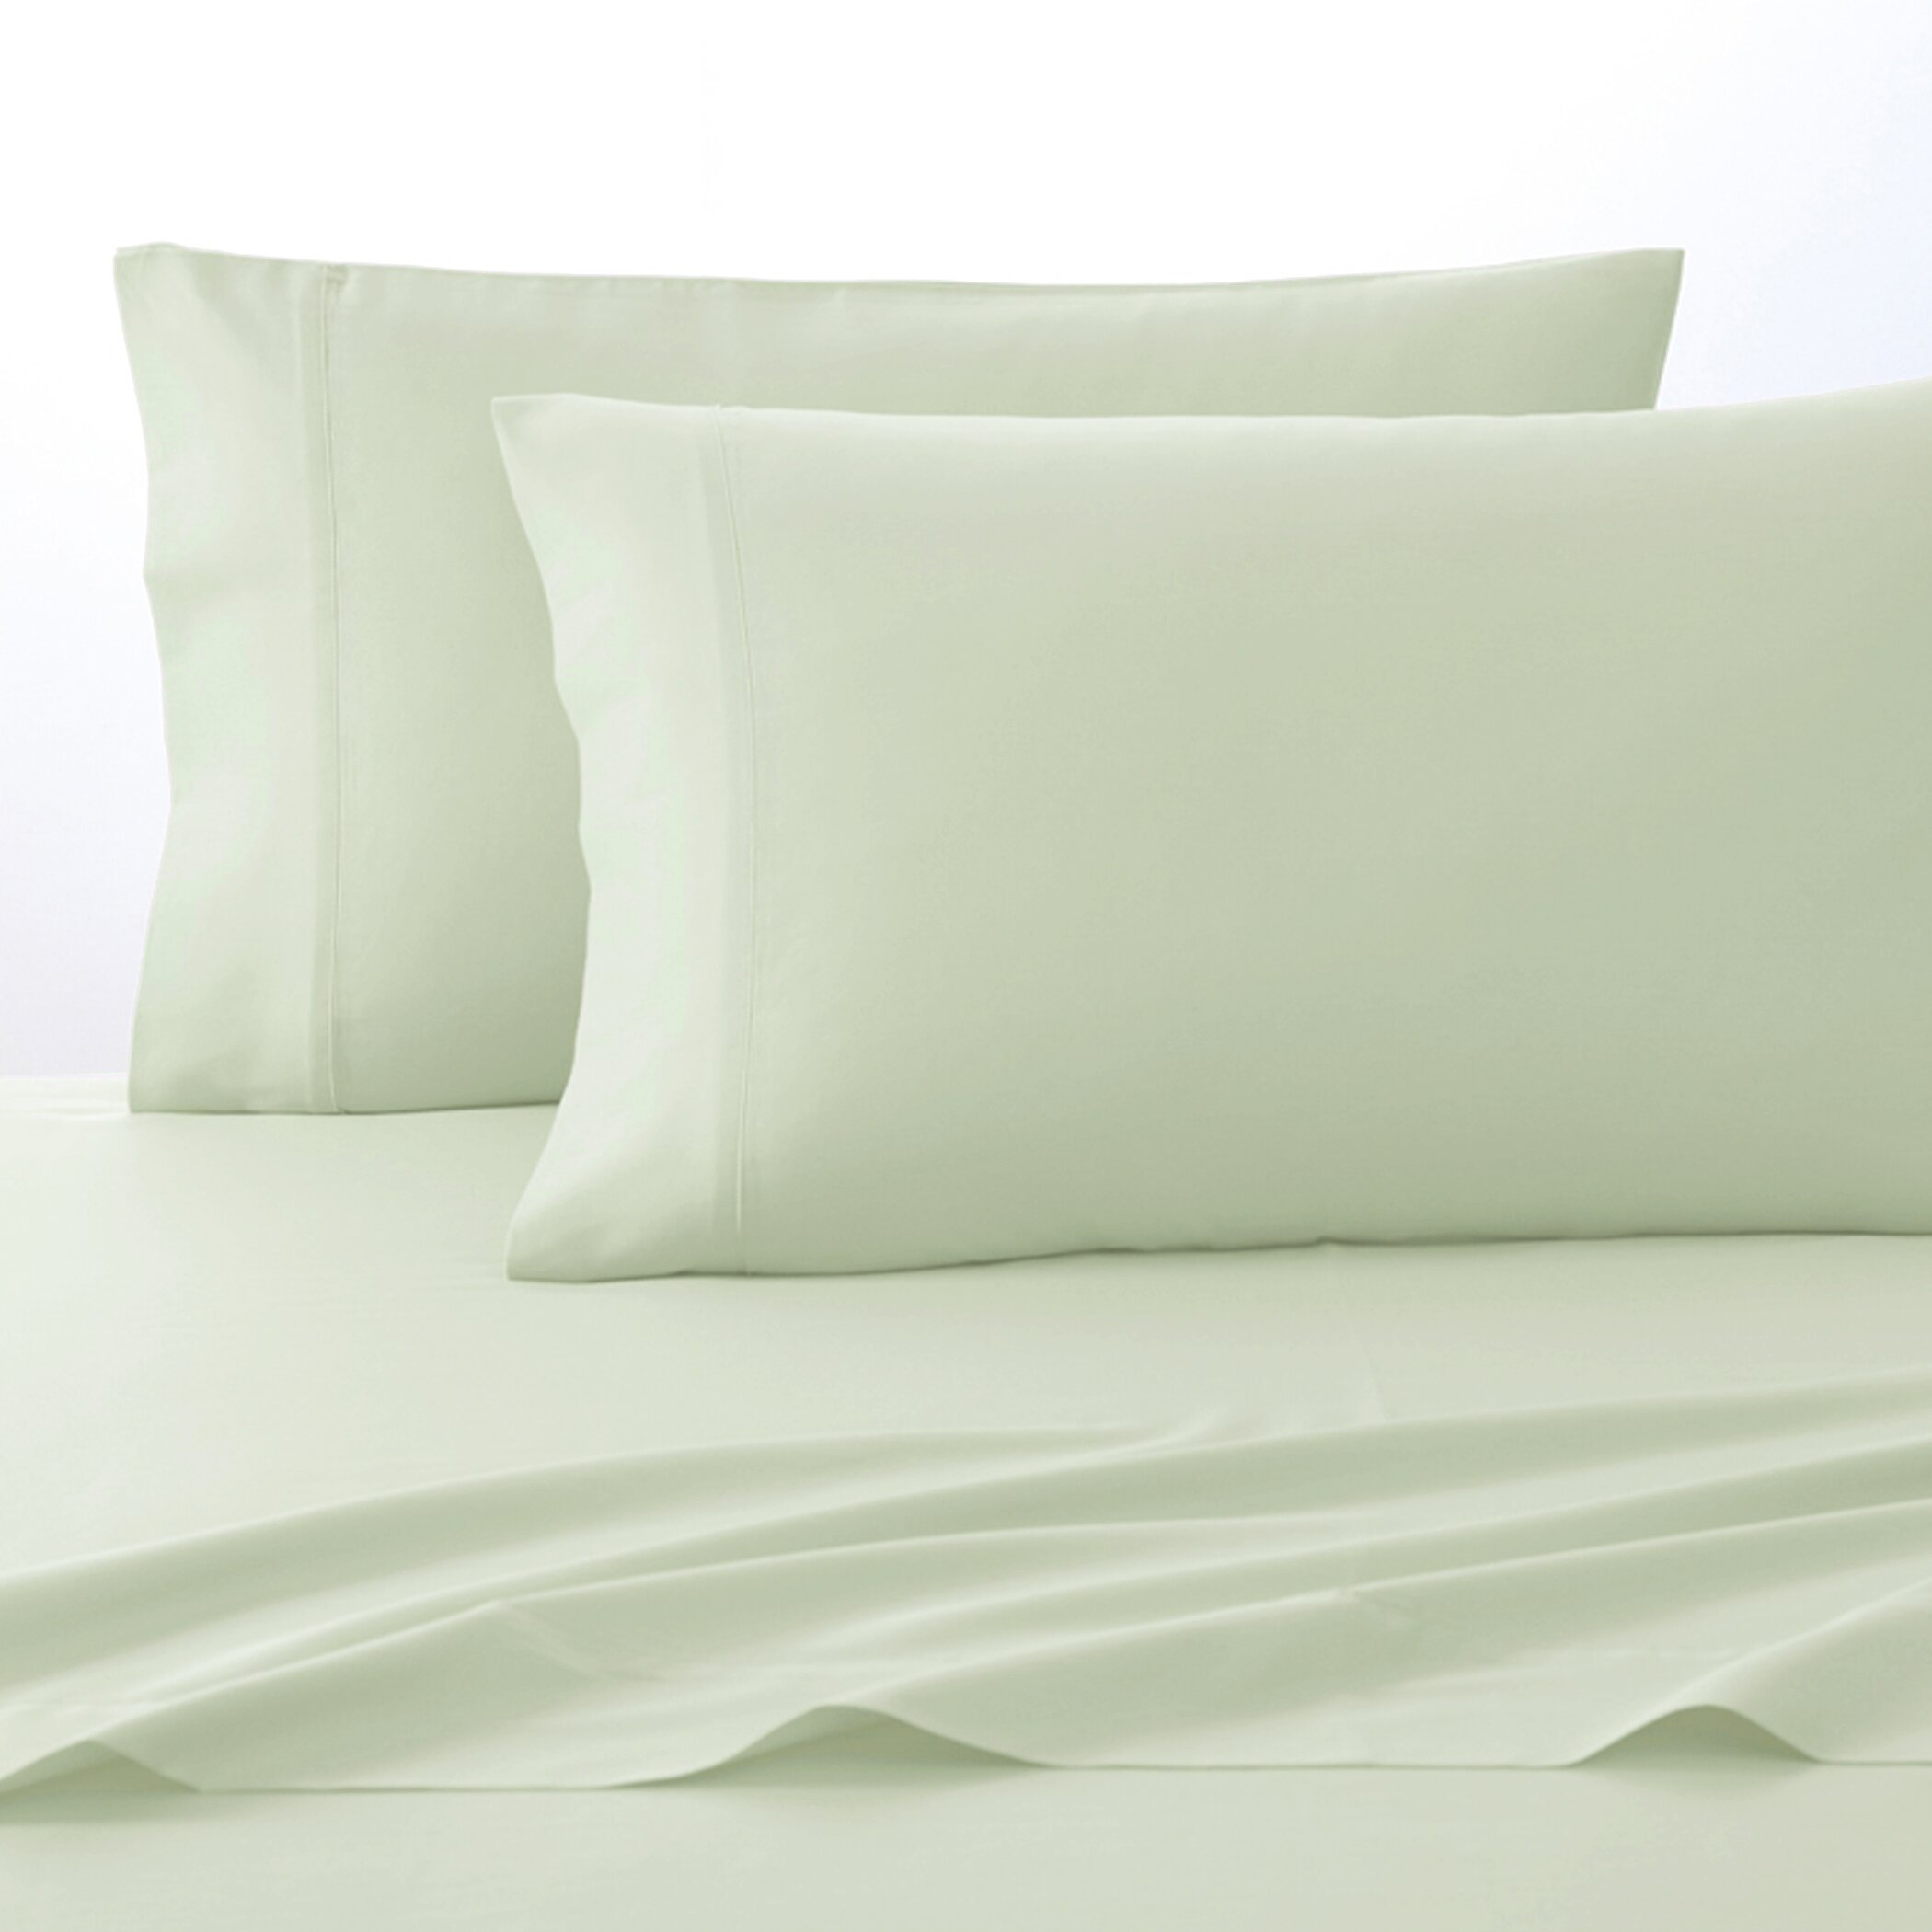 Ellison First Asia Made In America 300 Thread Count Pima